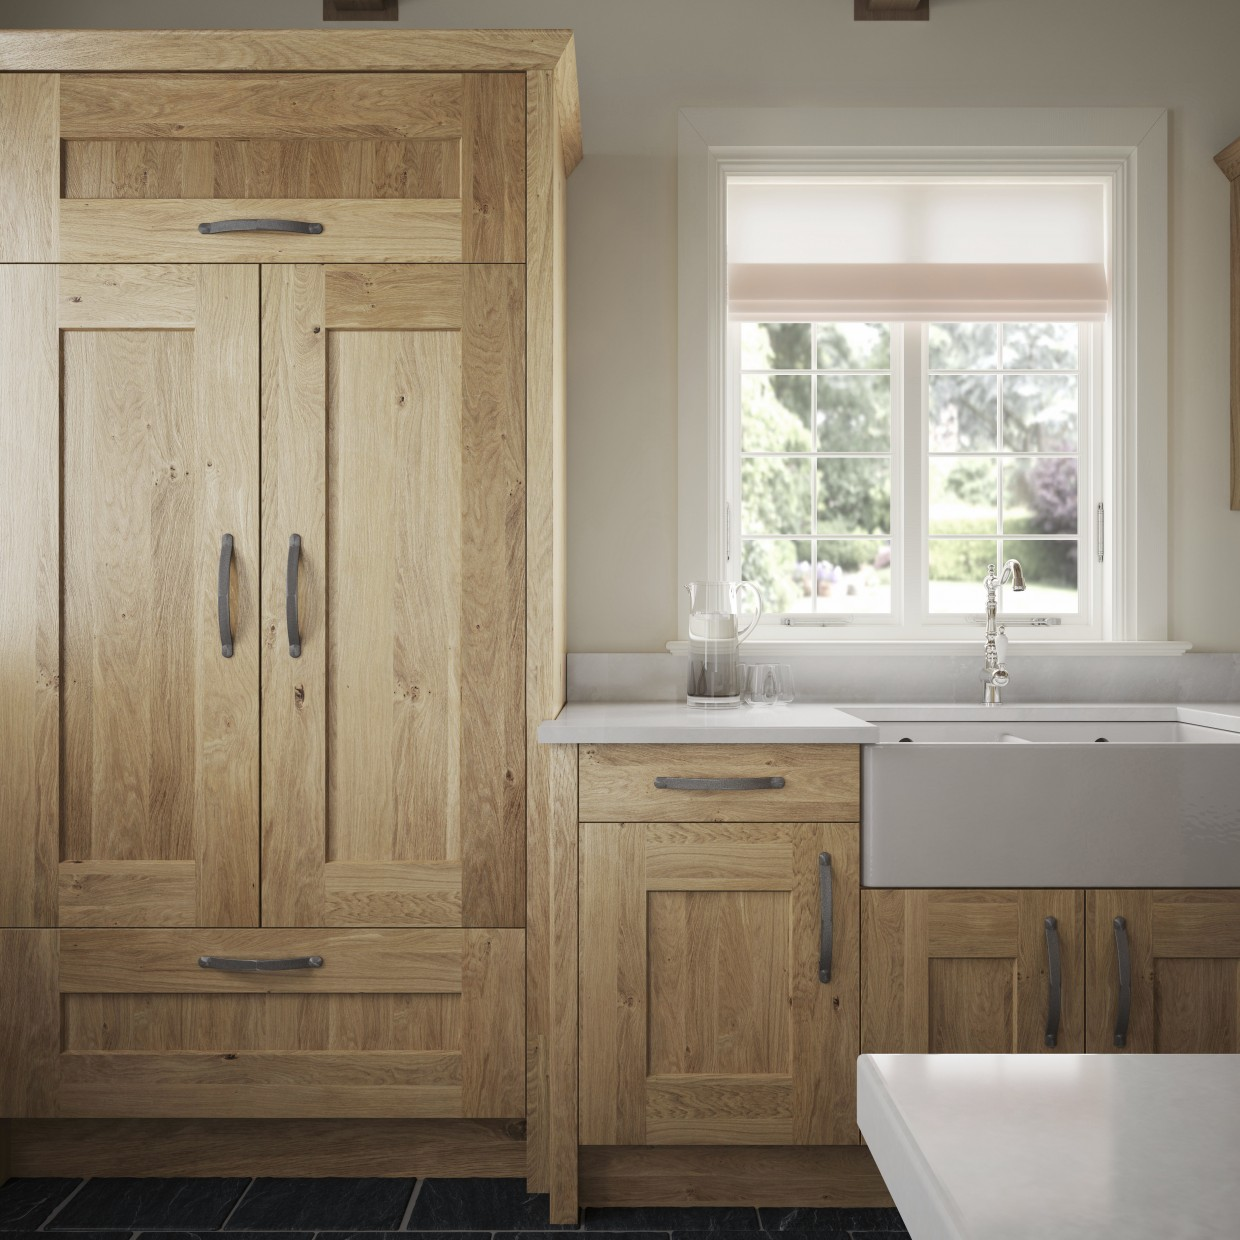 Knotty White Oak Cabinets: Kitchen Solutions Kilkenny